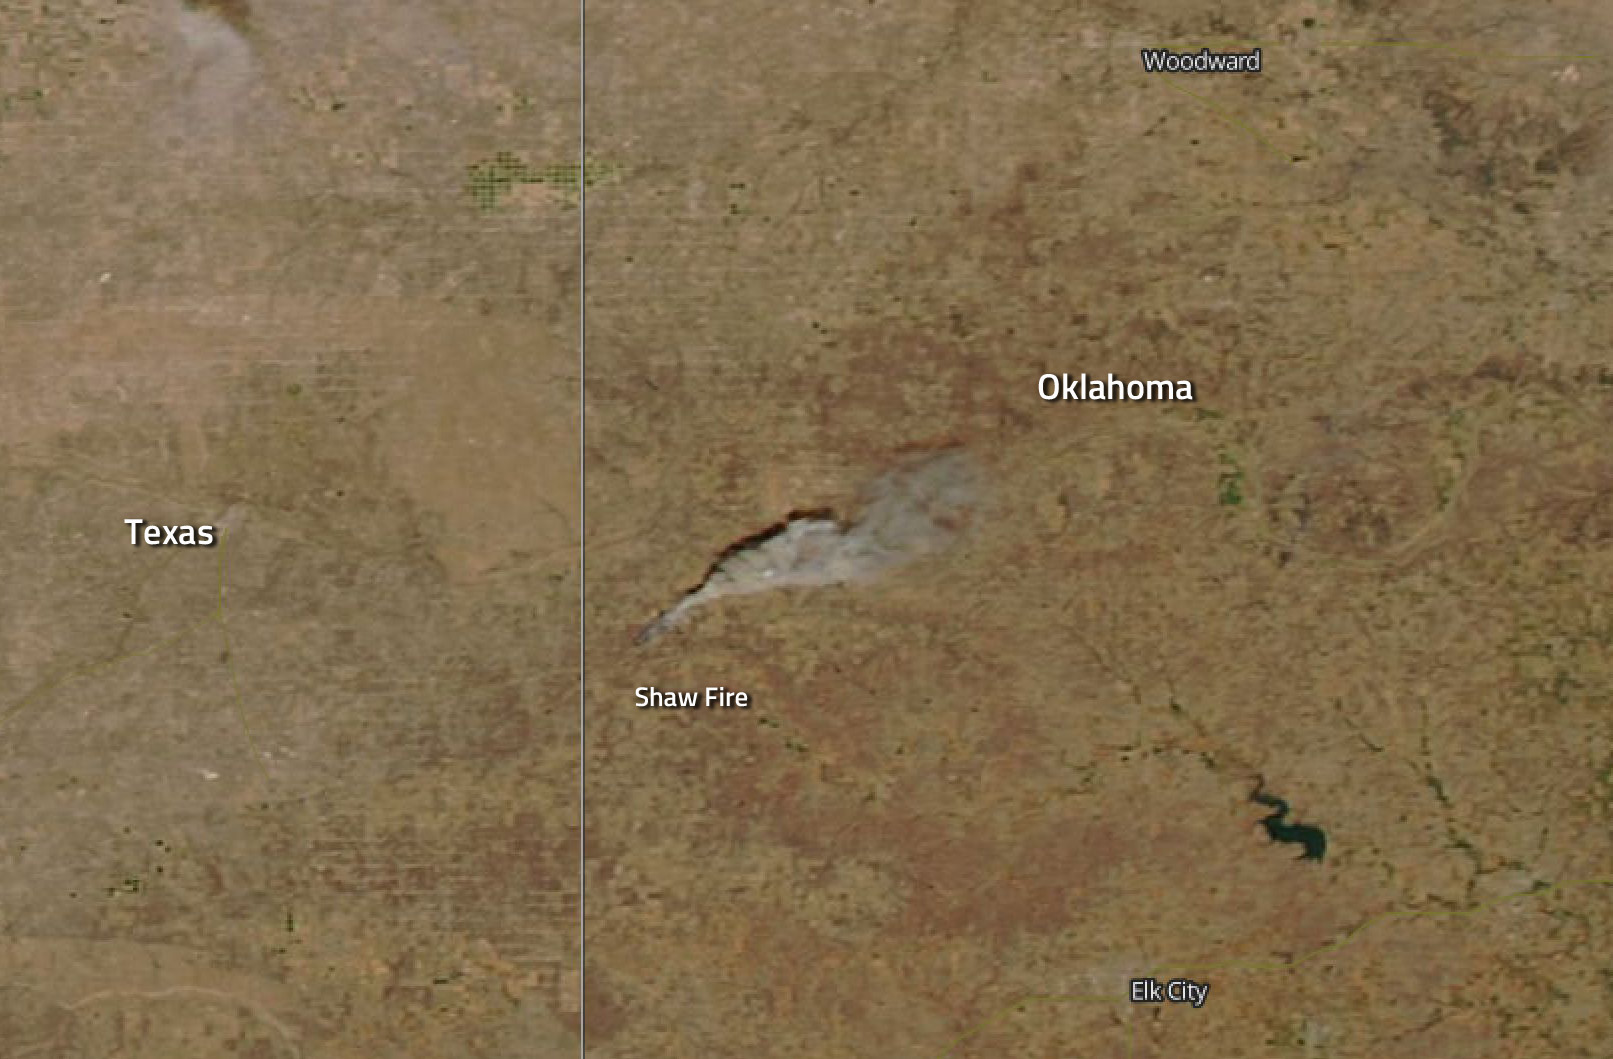 Oklahoma Sees Spate of Fires Including the Shaw Fire | NASA on a map of oklahoma, weather of oklahoma, world map of oklahoma, contour map of oklahoma, green map of oklahoma, detailed map of oklahoma, county map of oklahoma, physical map of oklahoma, aerial view of tulsa oklahoma, winds of oklahoma, aerial map of edmond oklahoma, seismic map of oklahoma, the map of oklahoma, hd map of oklahoma, topo map of oklahoma, elevation of oklahoma, street map of oklahoma, osage nation of oklahoma, pdf map of oklahoma, google maps oklahoma,